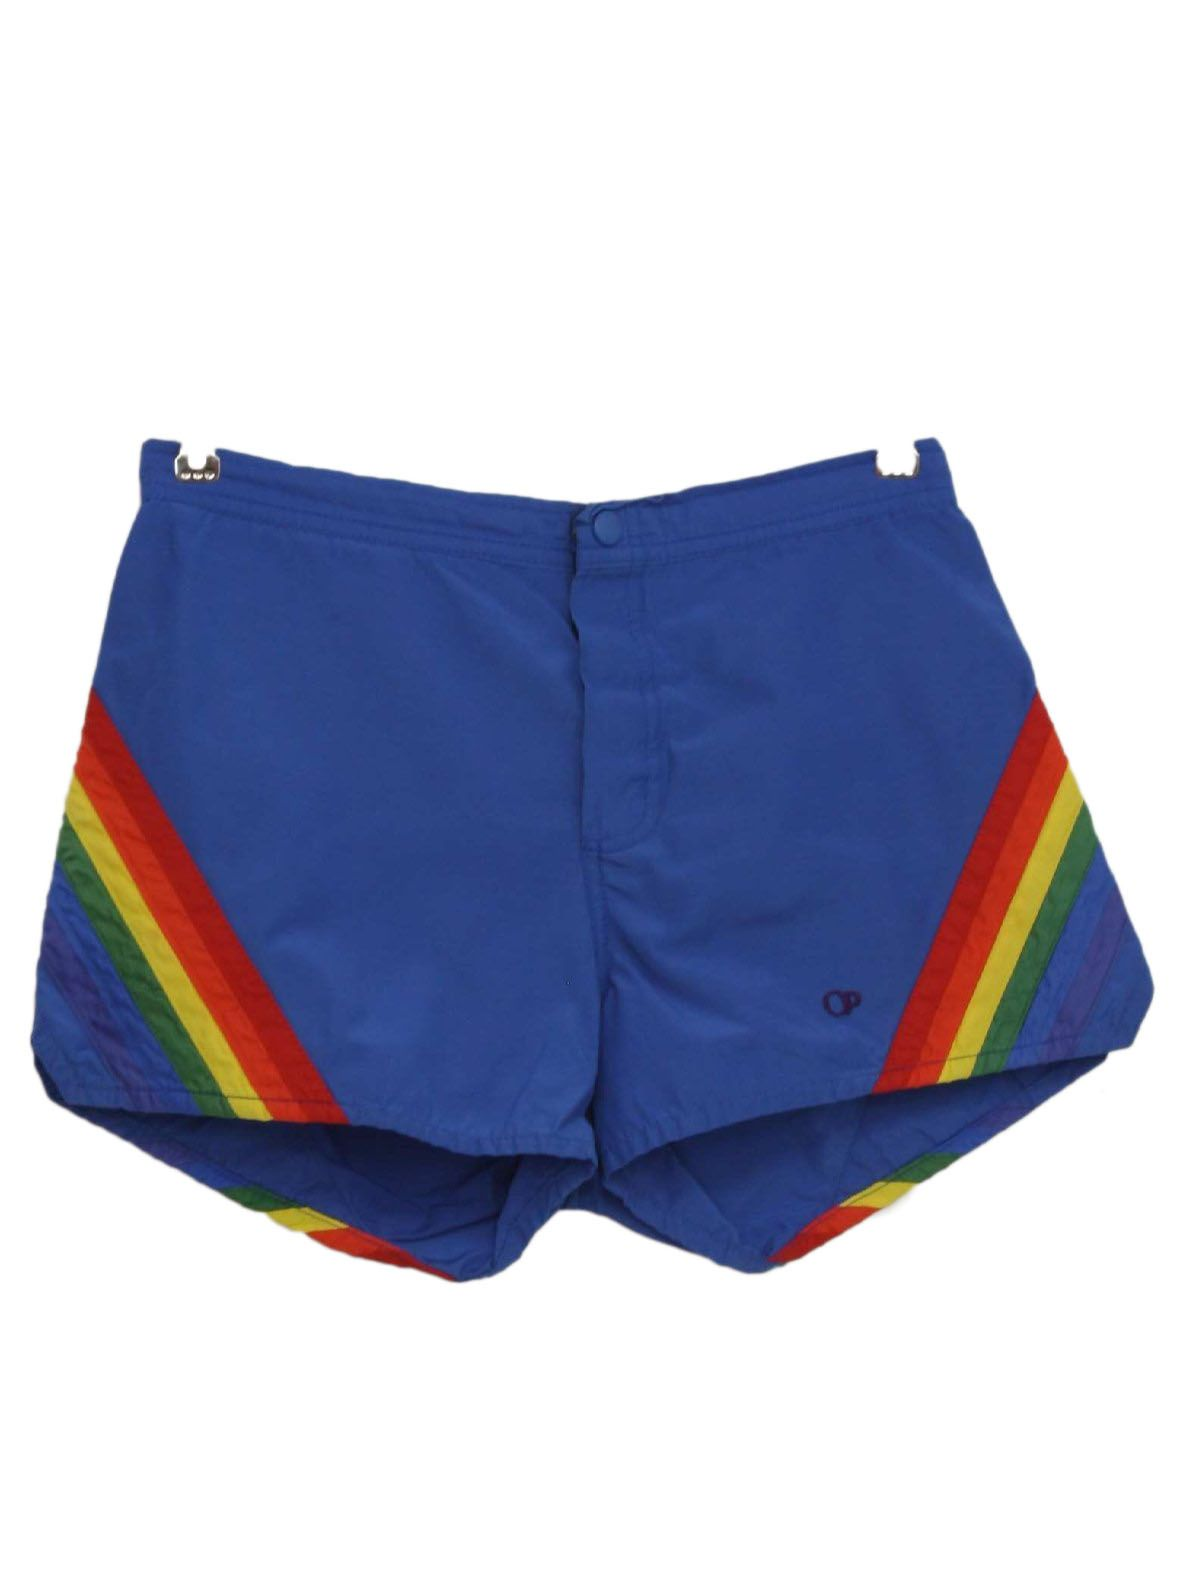 1980 S Ocean Pacific Womens Totally 80s Op Rainbow Shorts